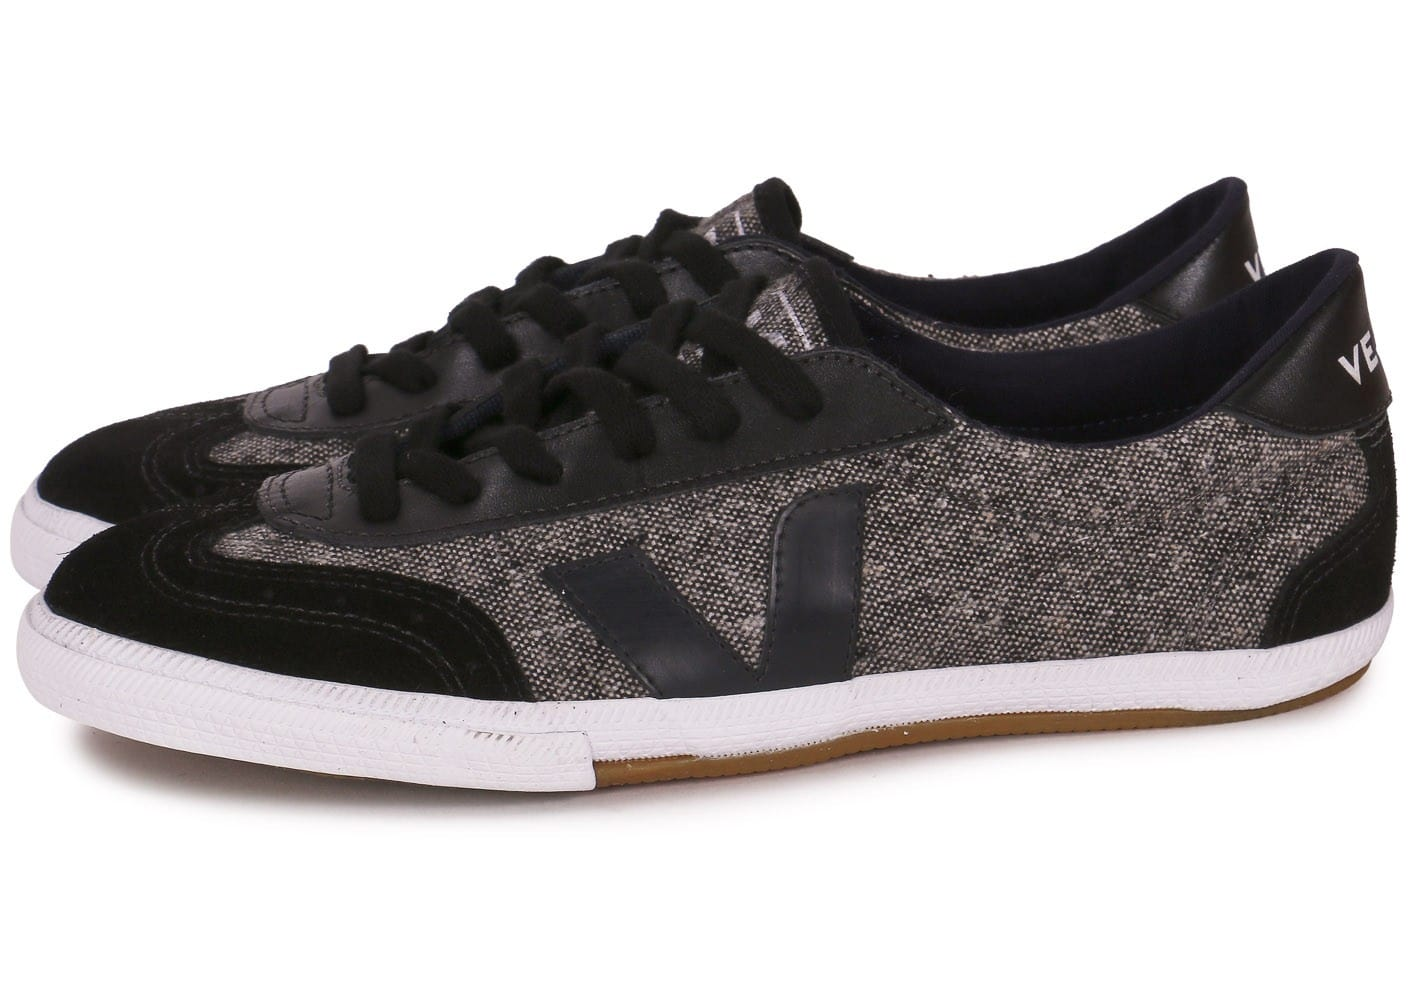 veja volley noire chaussures homme chausport. Black Bedroom Furniture Sets. Home Design Ideas